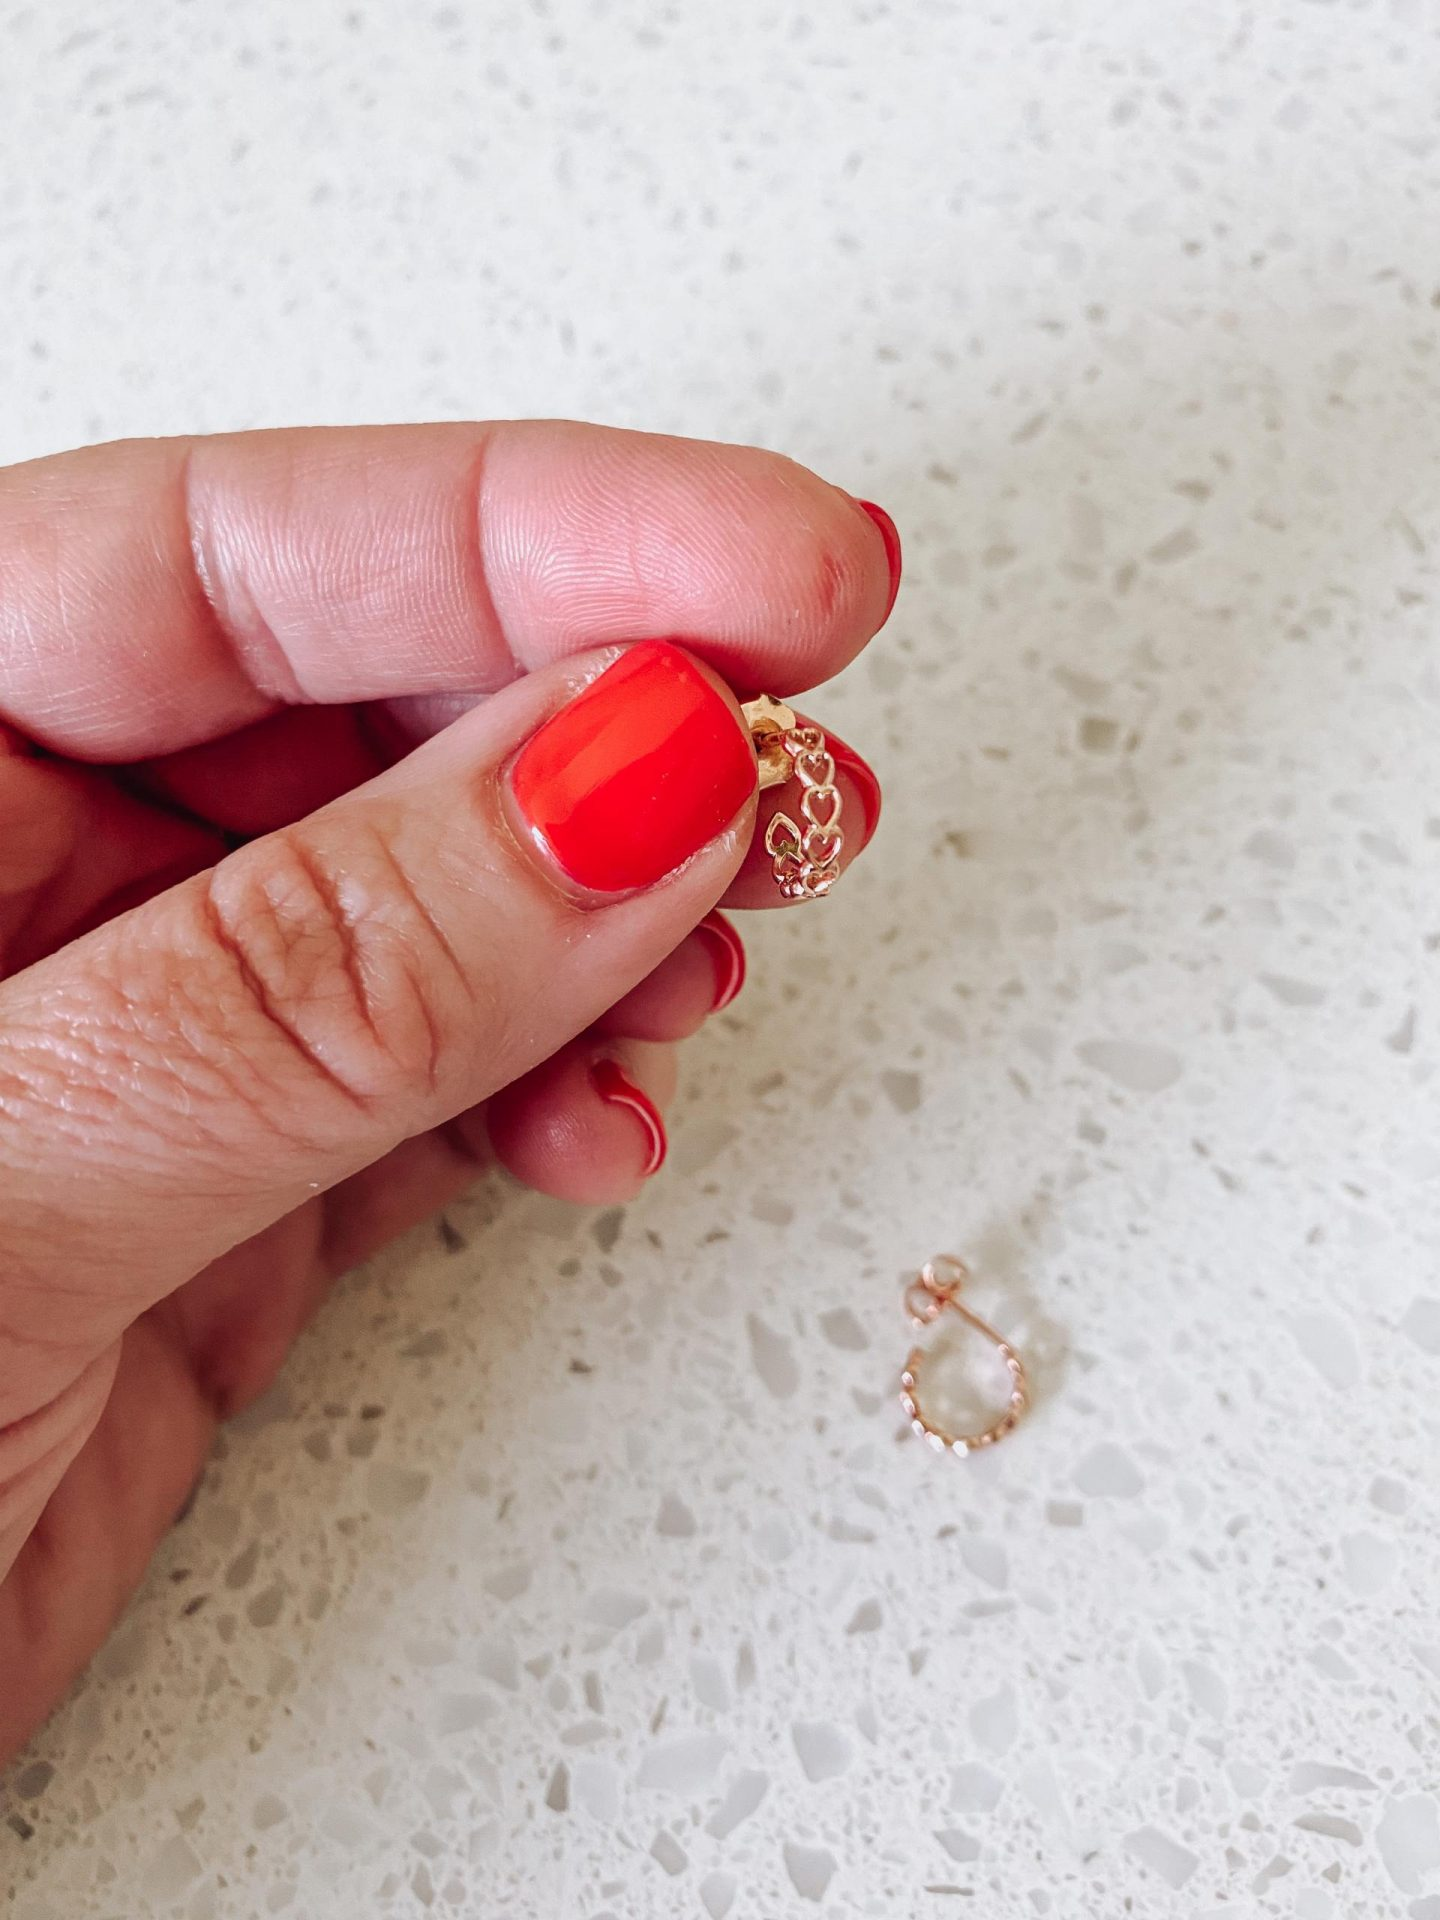 NC blogger Rebecca Lately is sharing her newest jewelry additions, a pair of rose gold huggie earrings and dainty ring from AUrate.